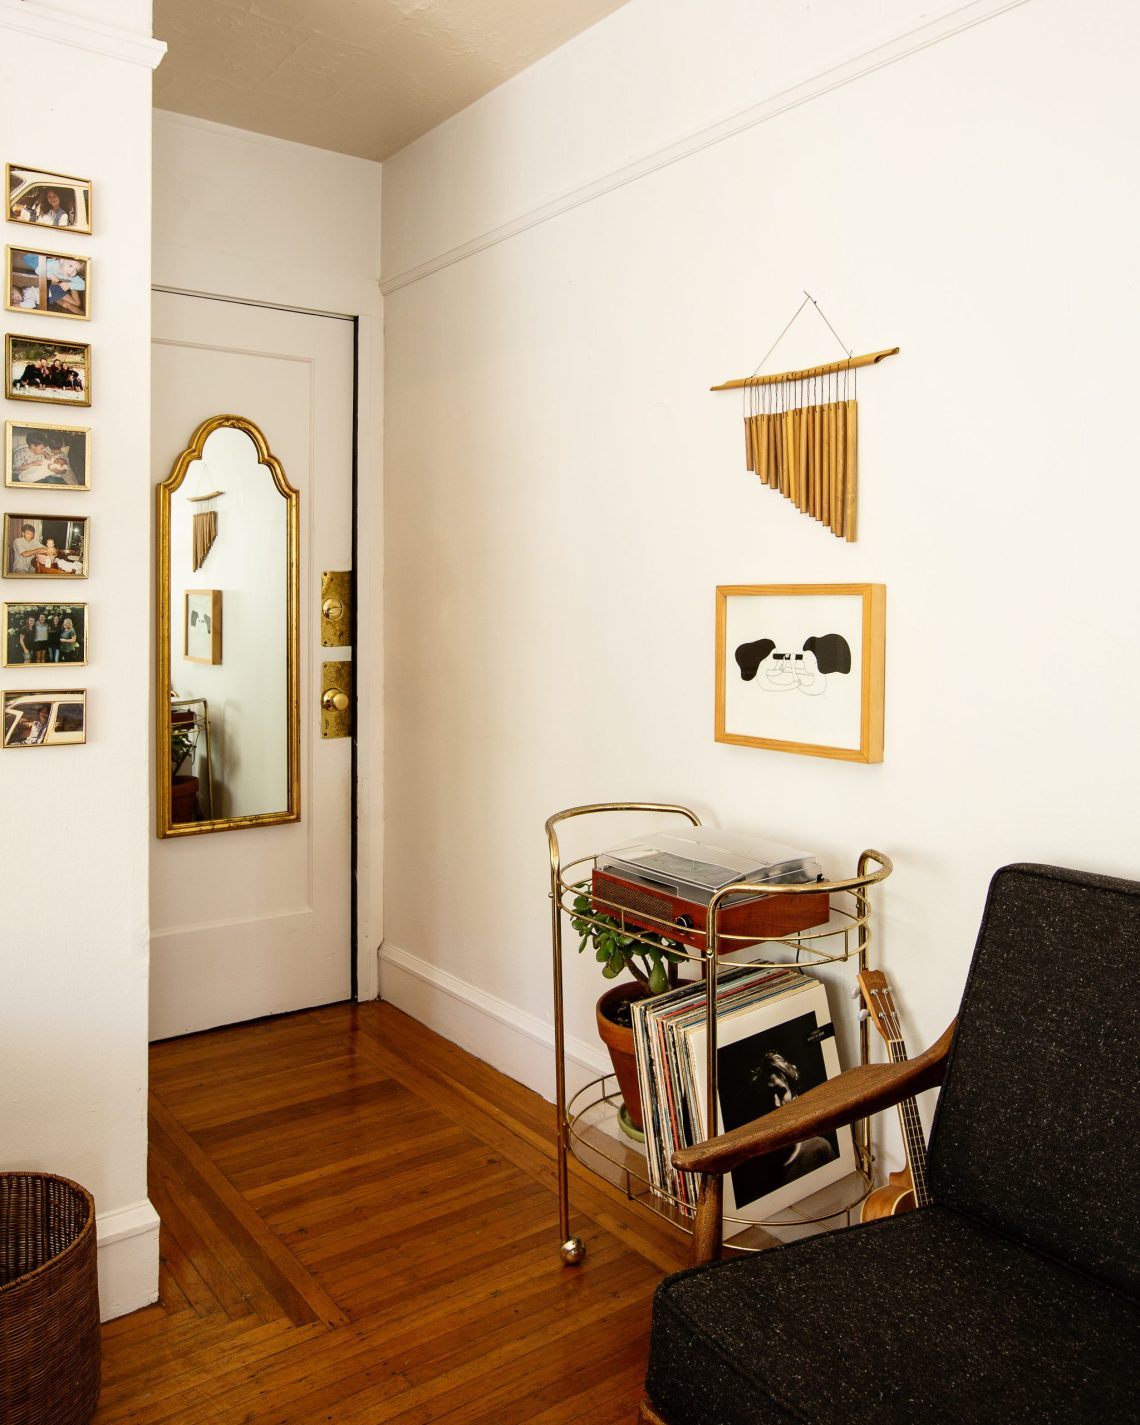 Small apartment decor ideas, by designer Carrie Burch